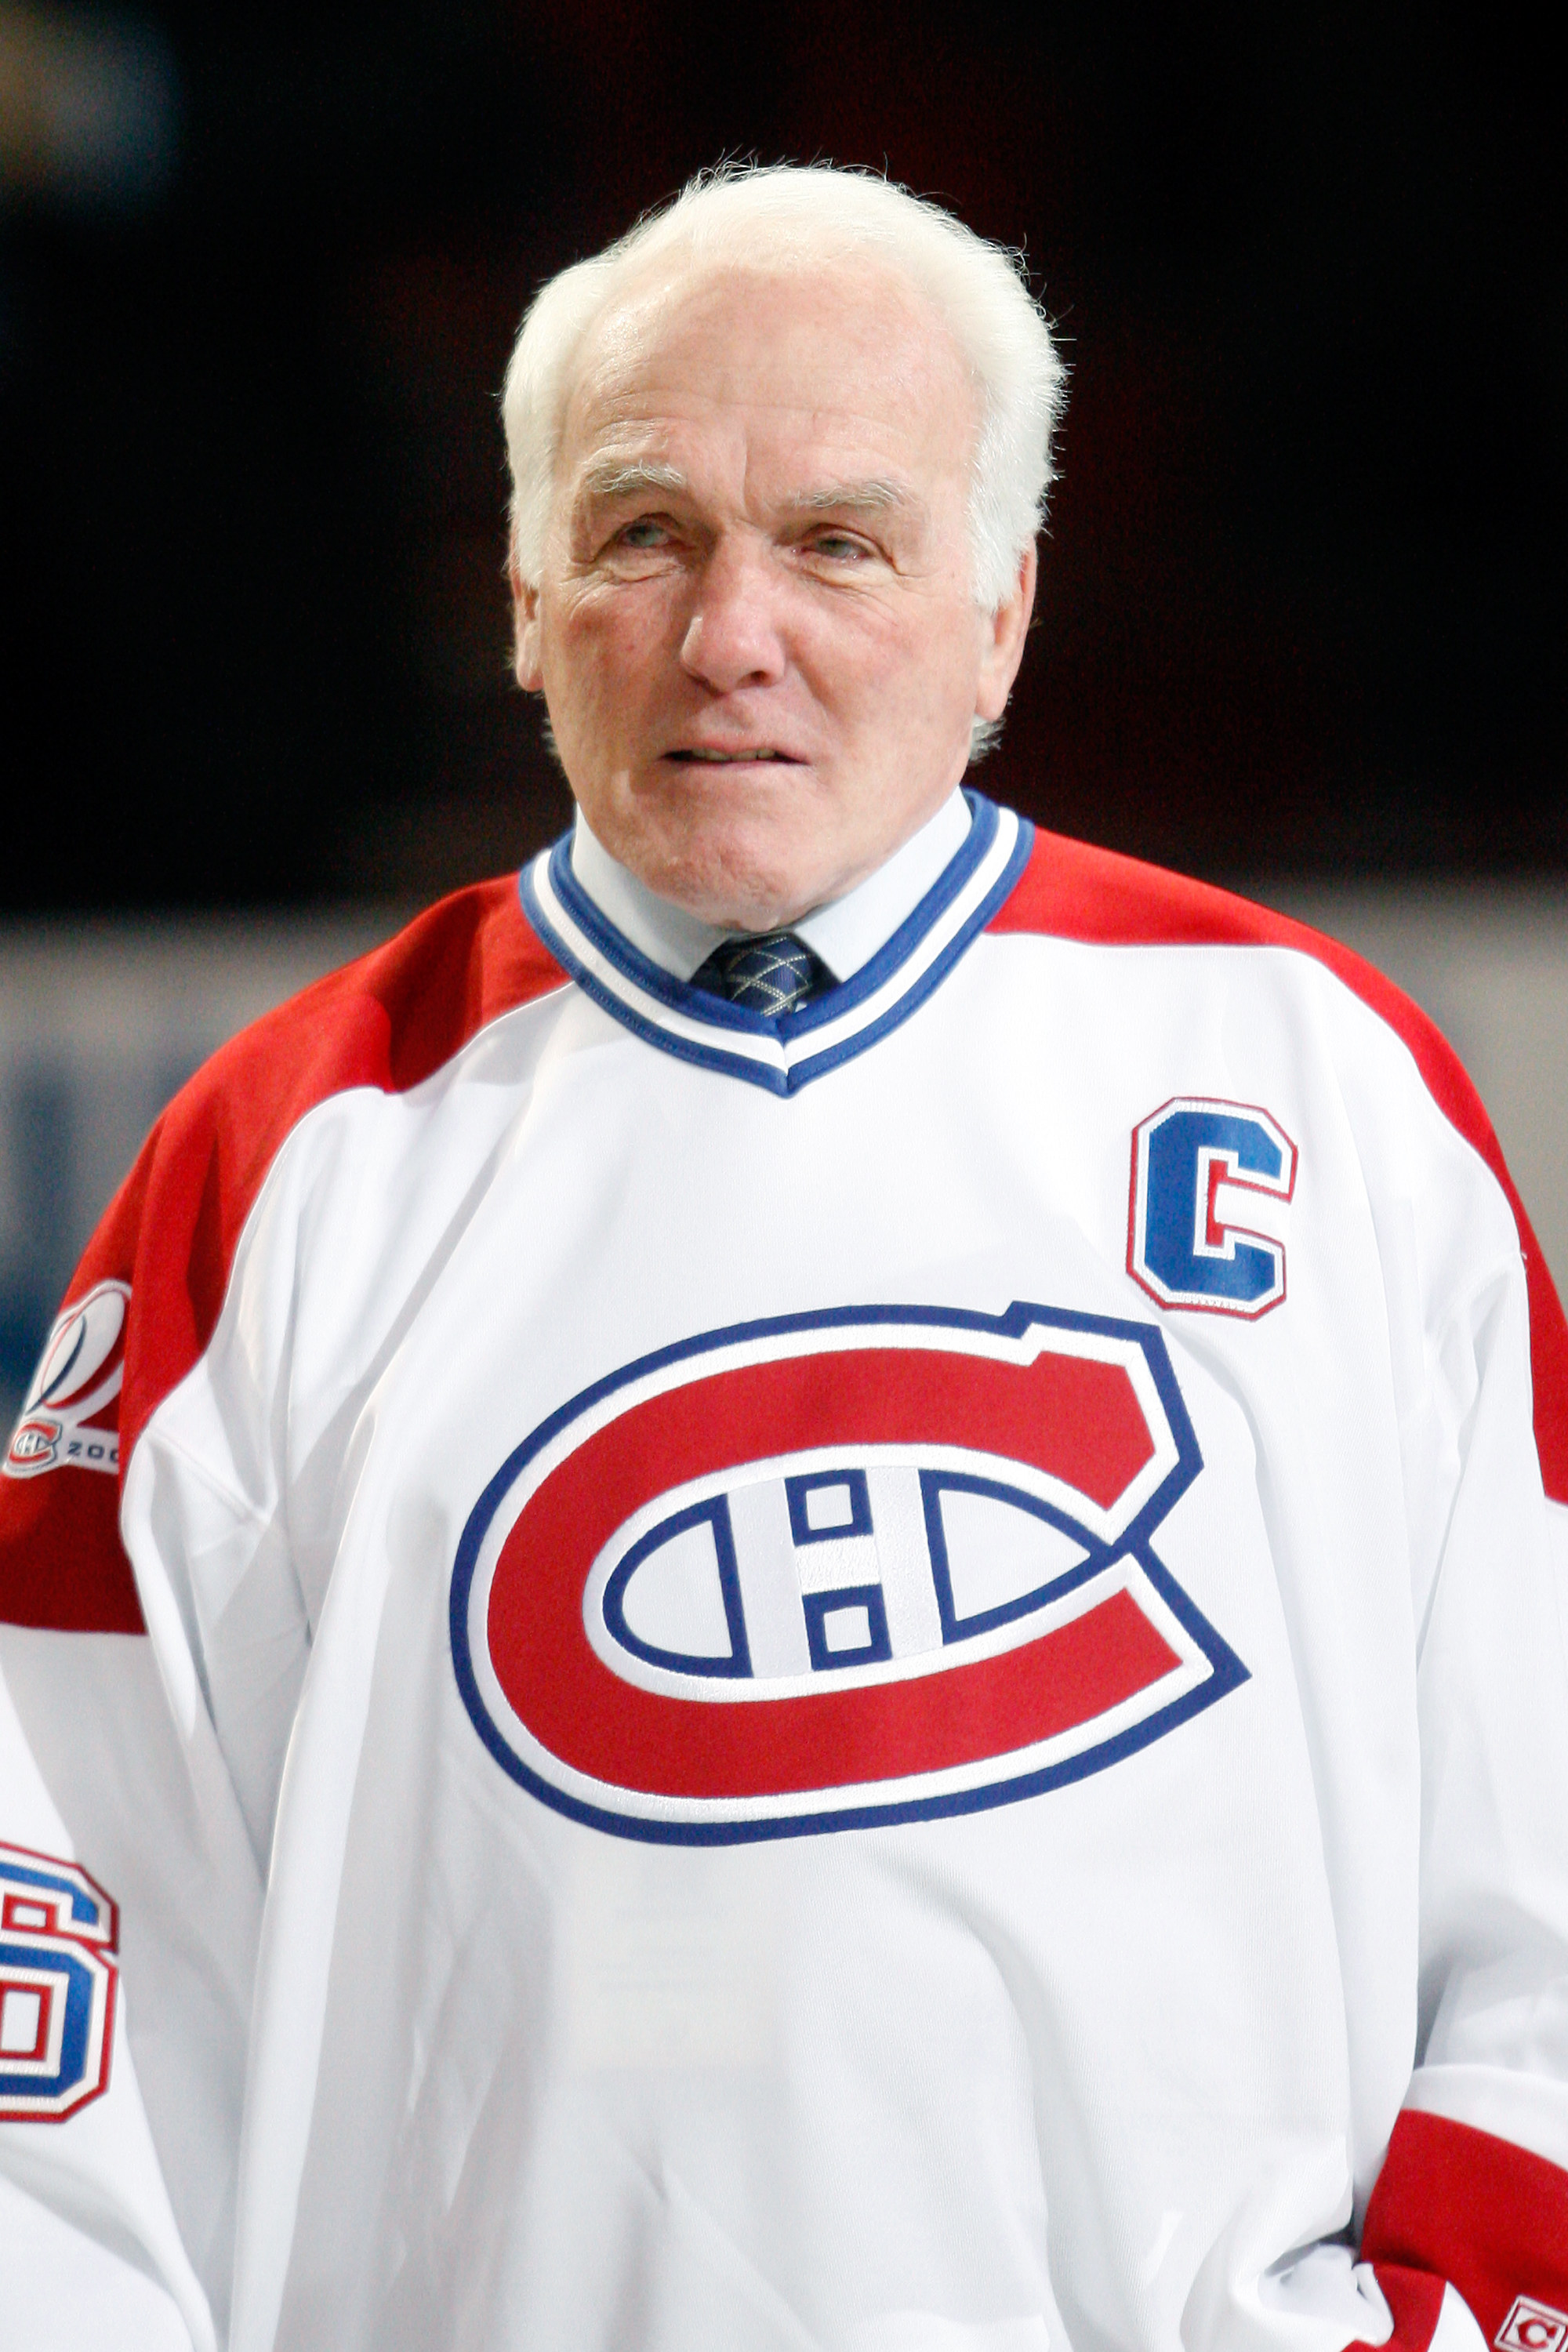 MONTREAL- DECEMBER 4:  Former Montreal Canadiens Henri Richard attends the Centennial Celebration ceremonies prior to the NHL game between the Montreal Canadiens and Boston Bruins on December 4, 2009 at the Bell Centre in Montreal, Quebec, Canada.  The Ca